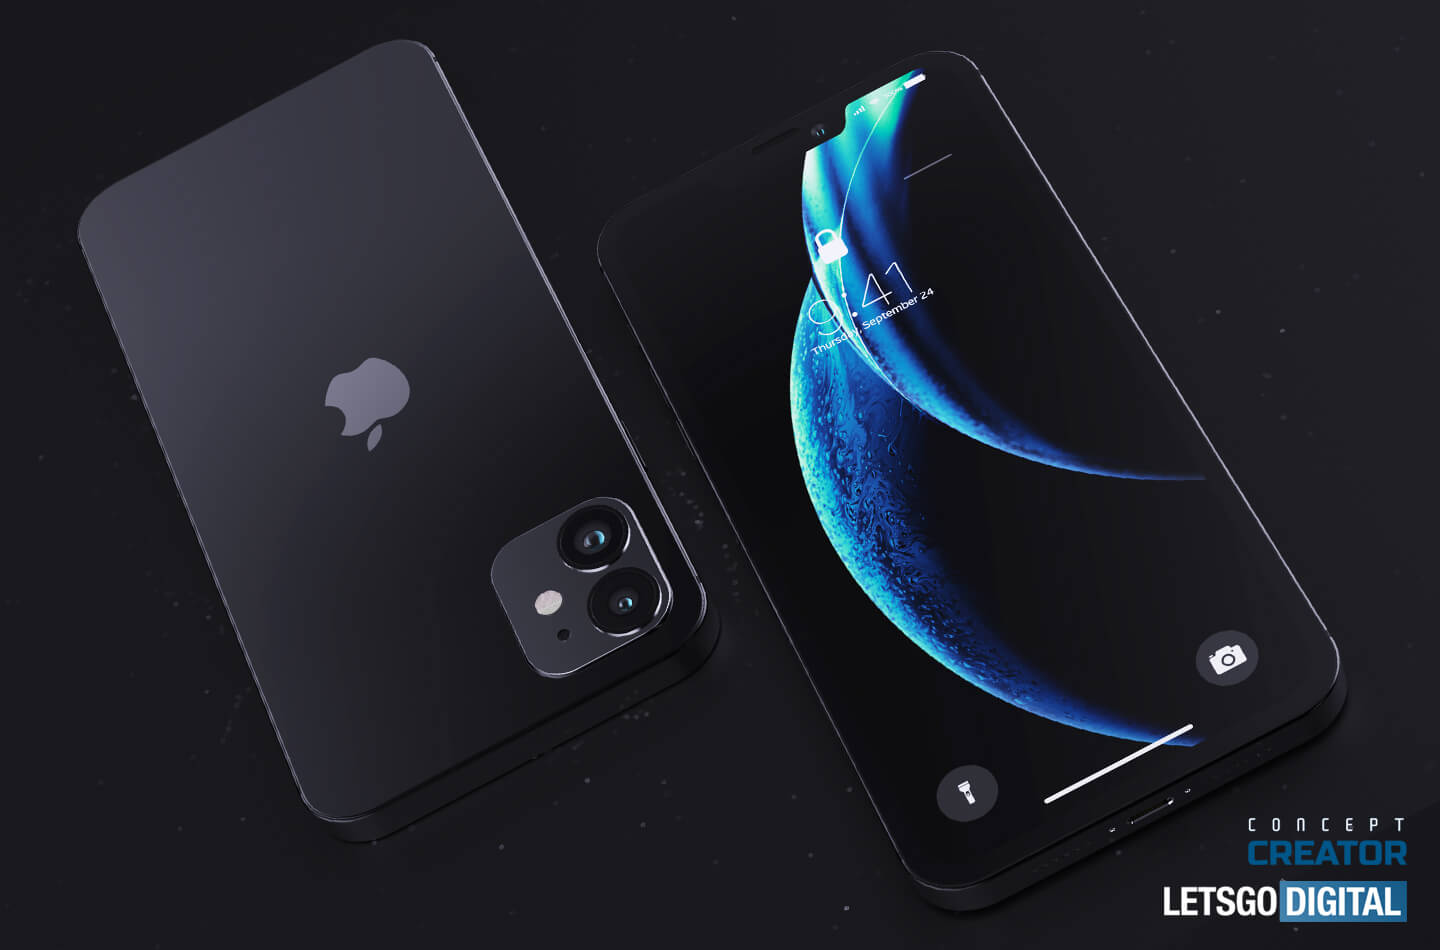 This concept brings us an iPhone 12 without notch and with a rear screen